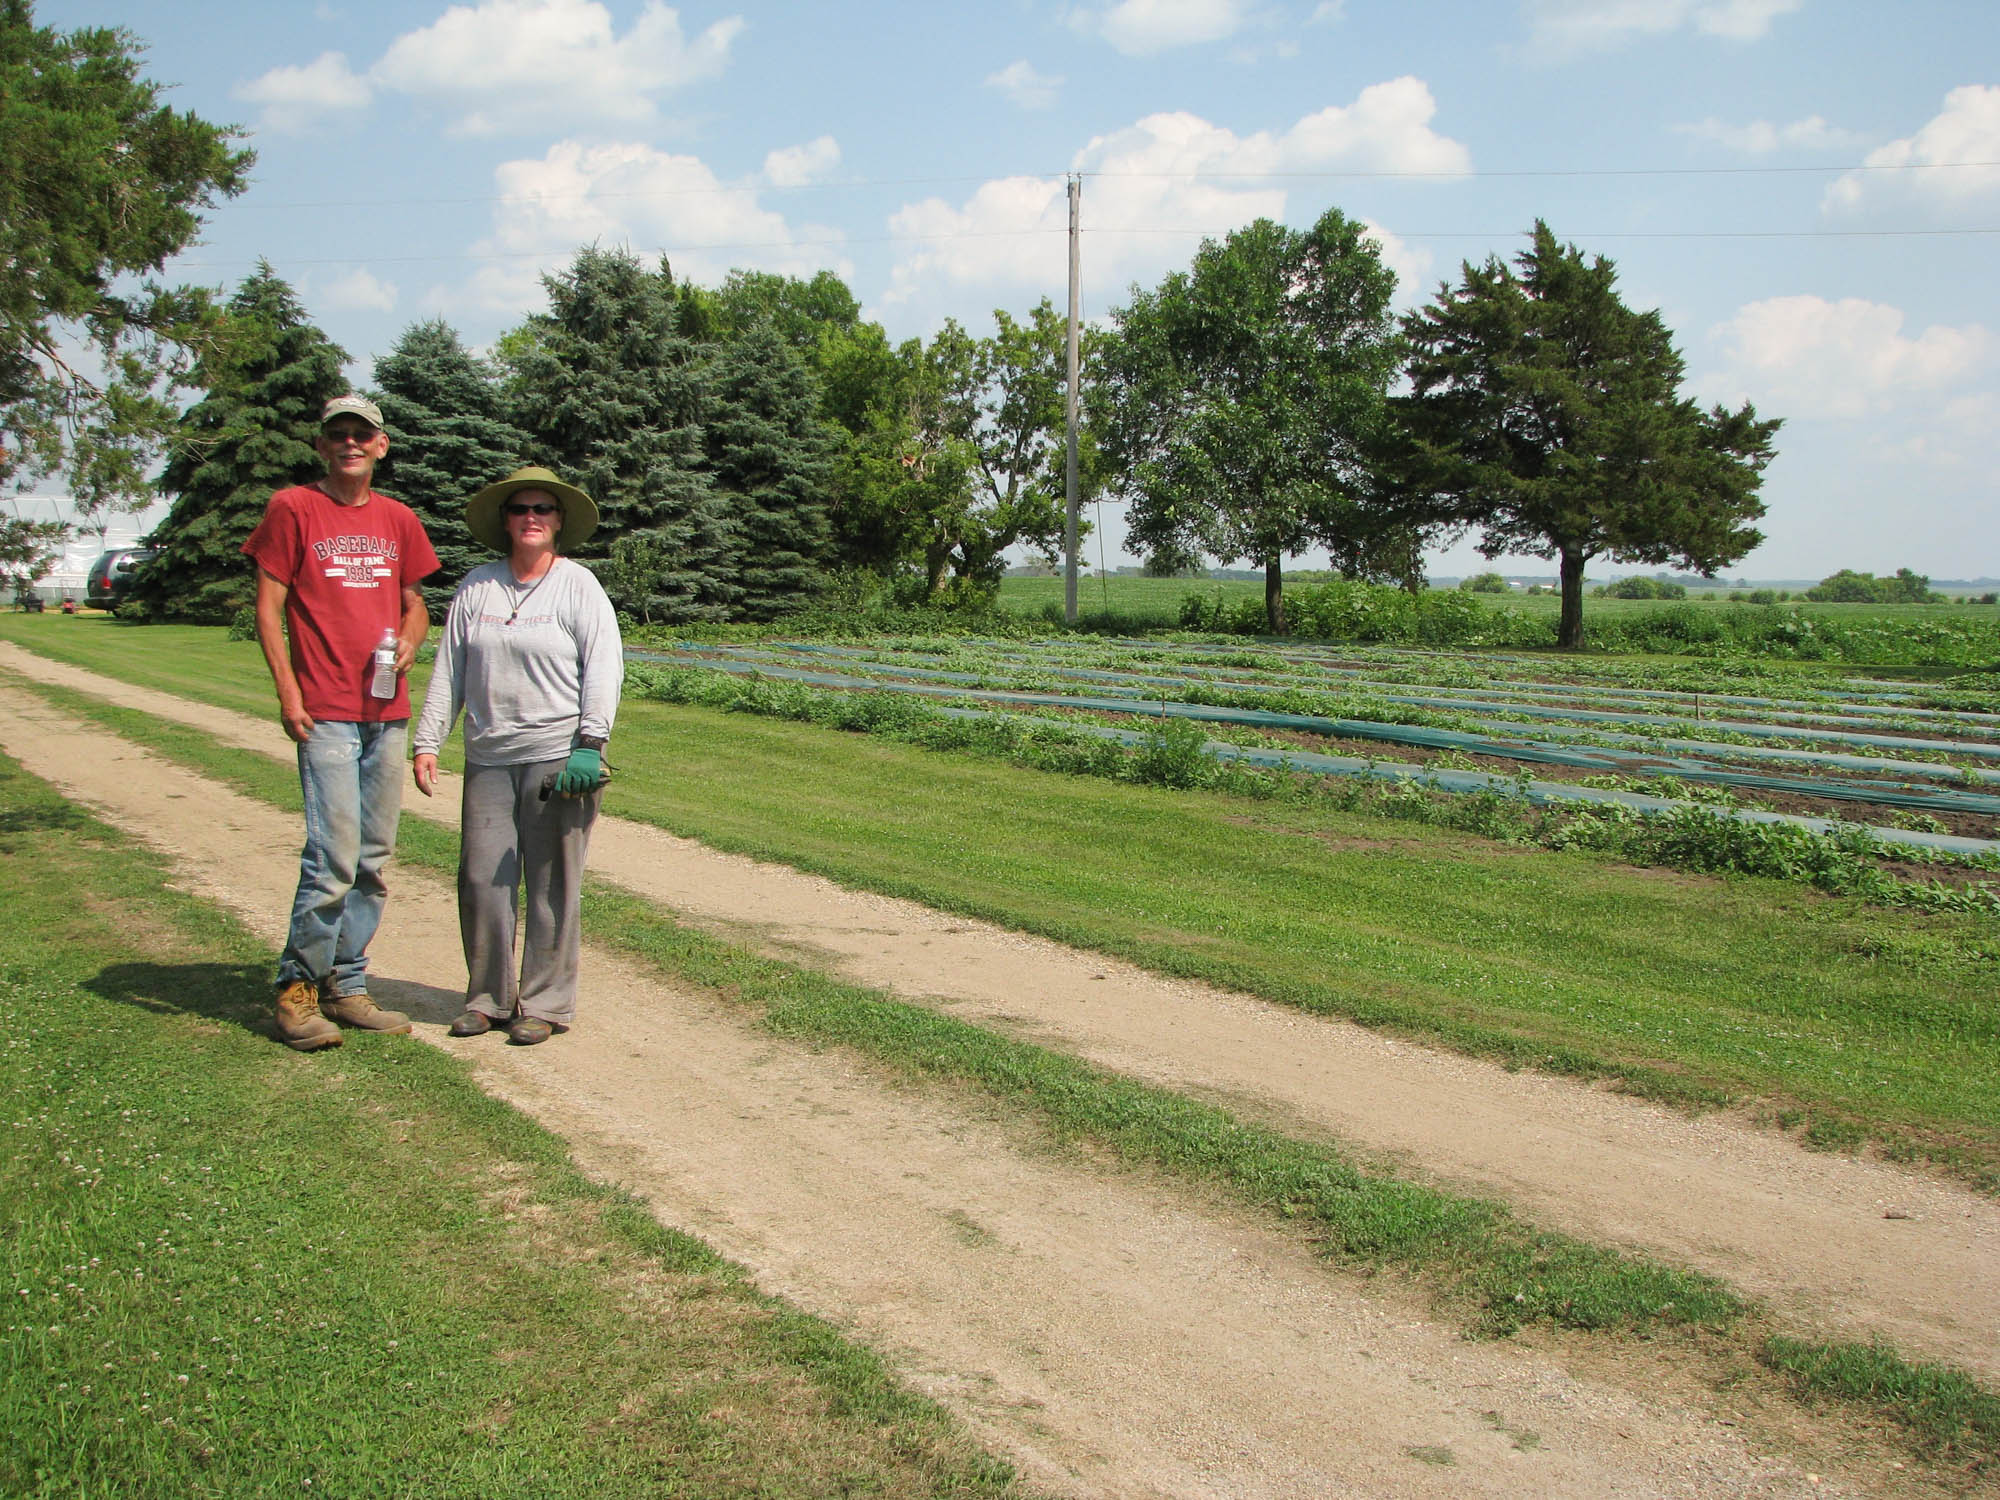 Lee and Mary Storo on their CSA farm between Beresford and Sioux Falls